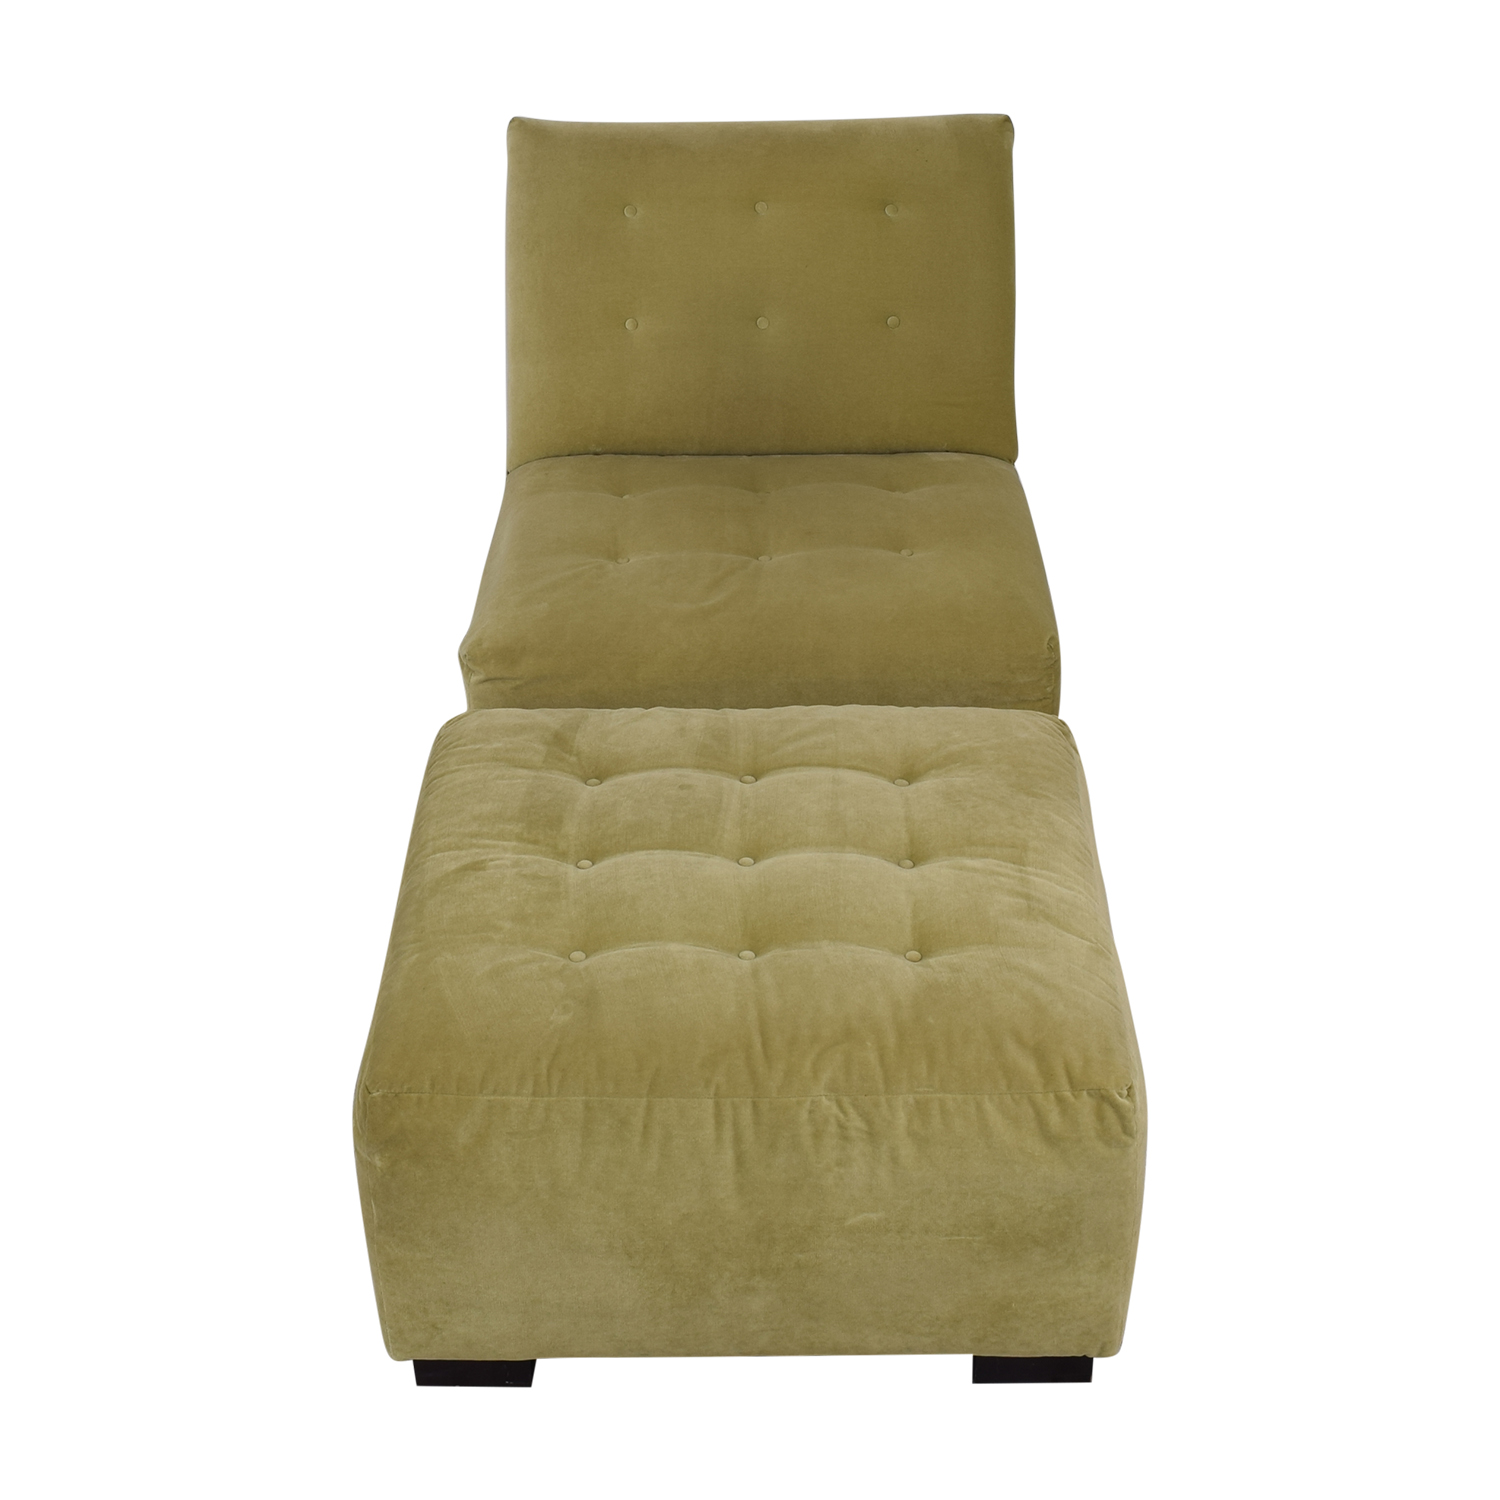 Crate & Barrel Crate & Barrel Sage Green Tufted Lounge Chair & Ottoman nj